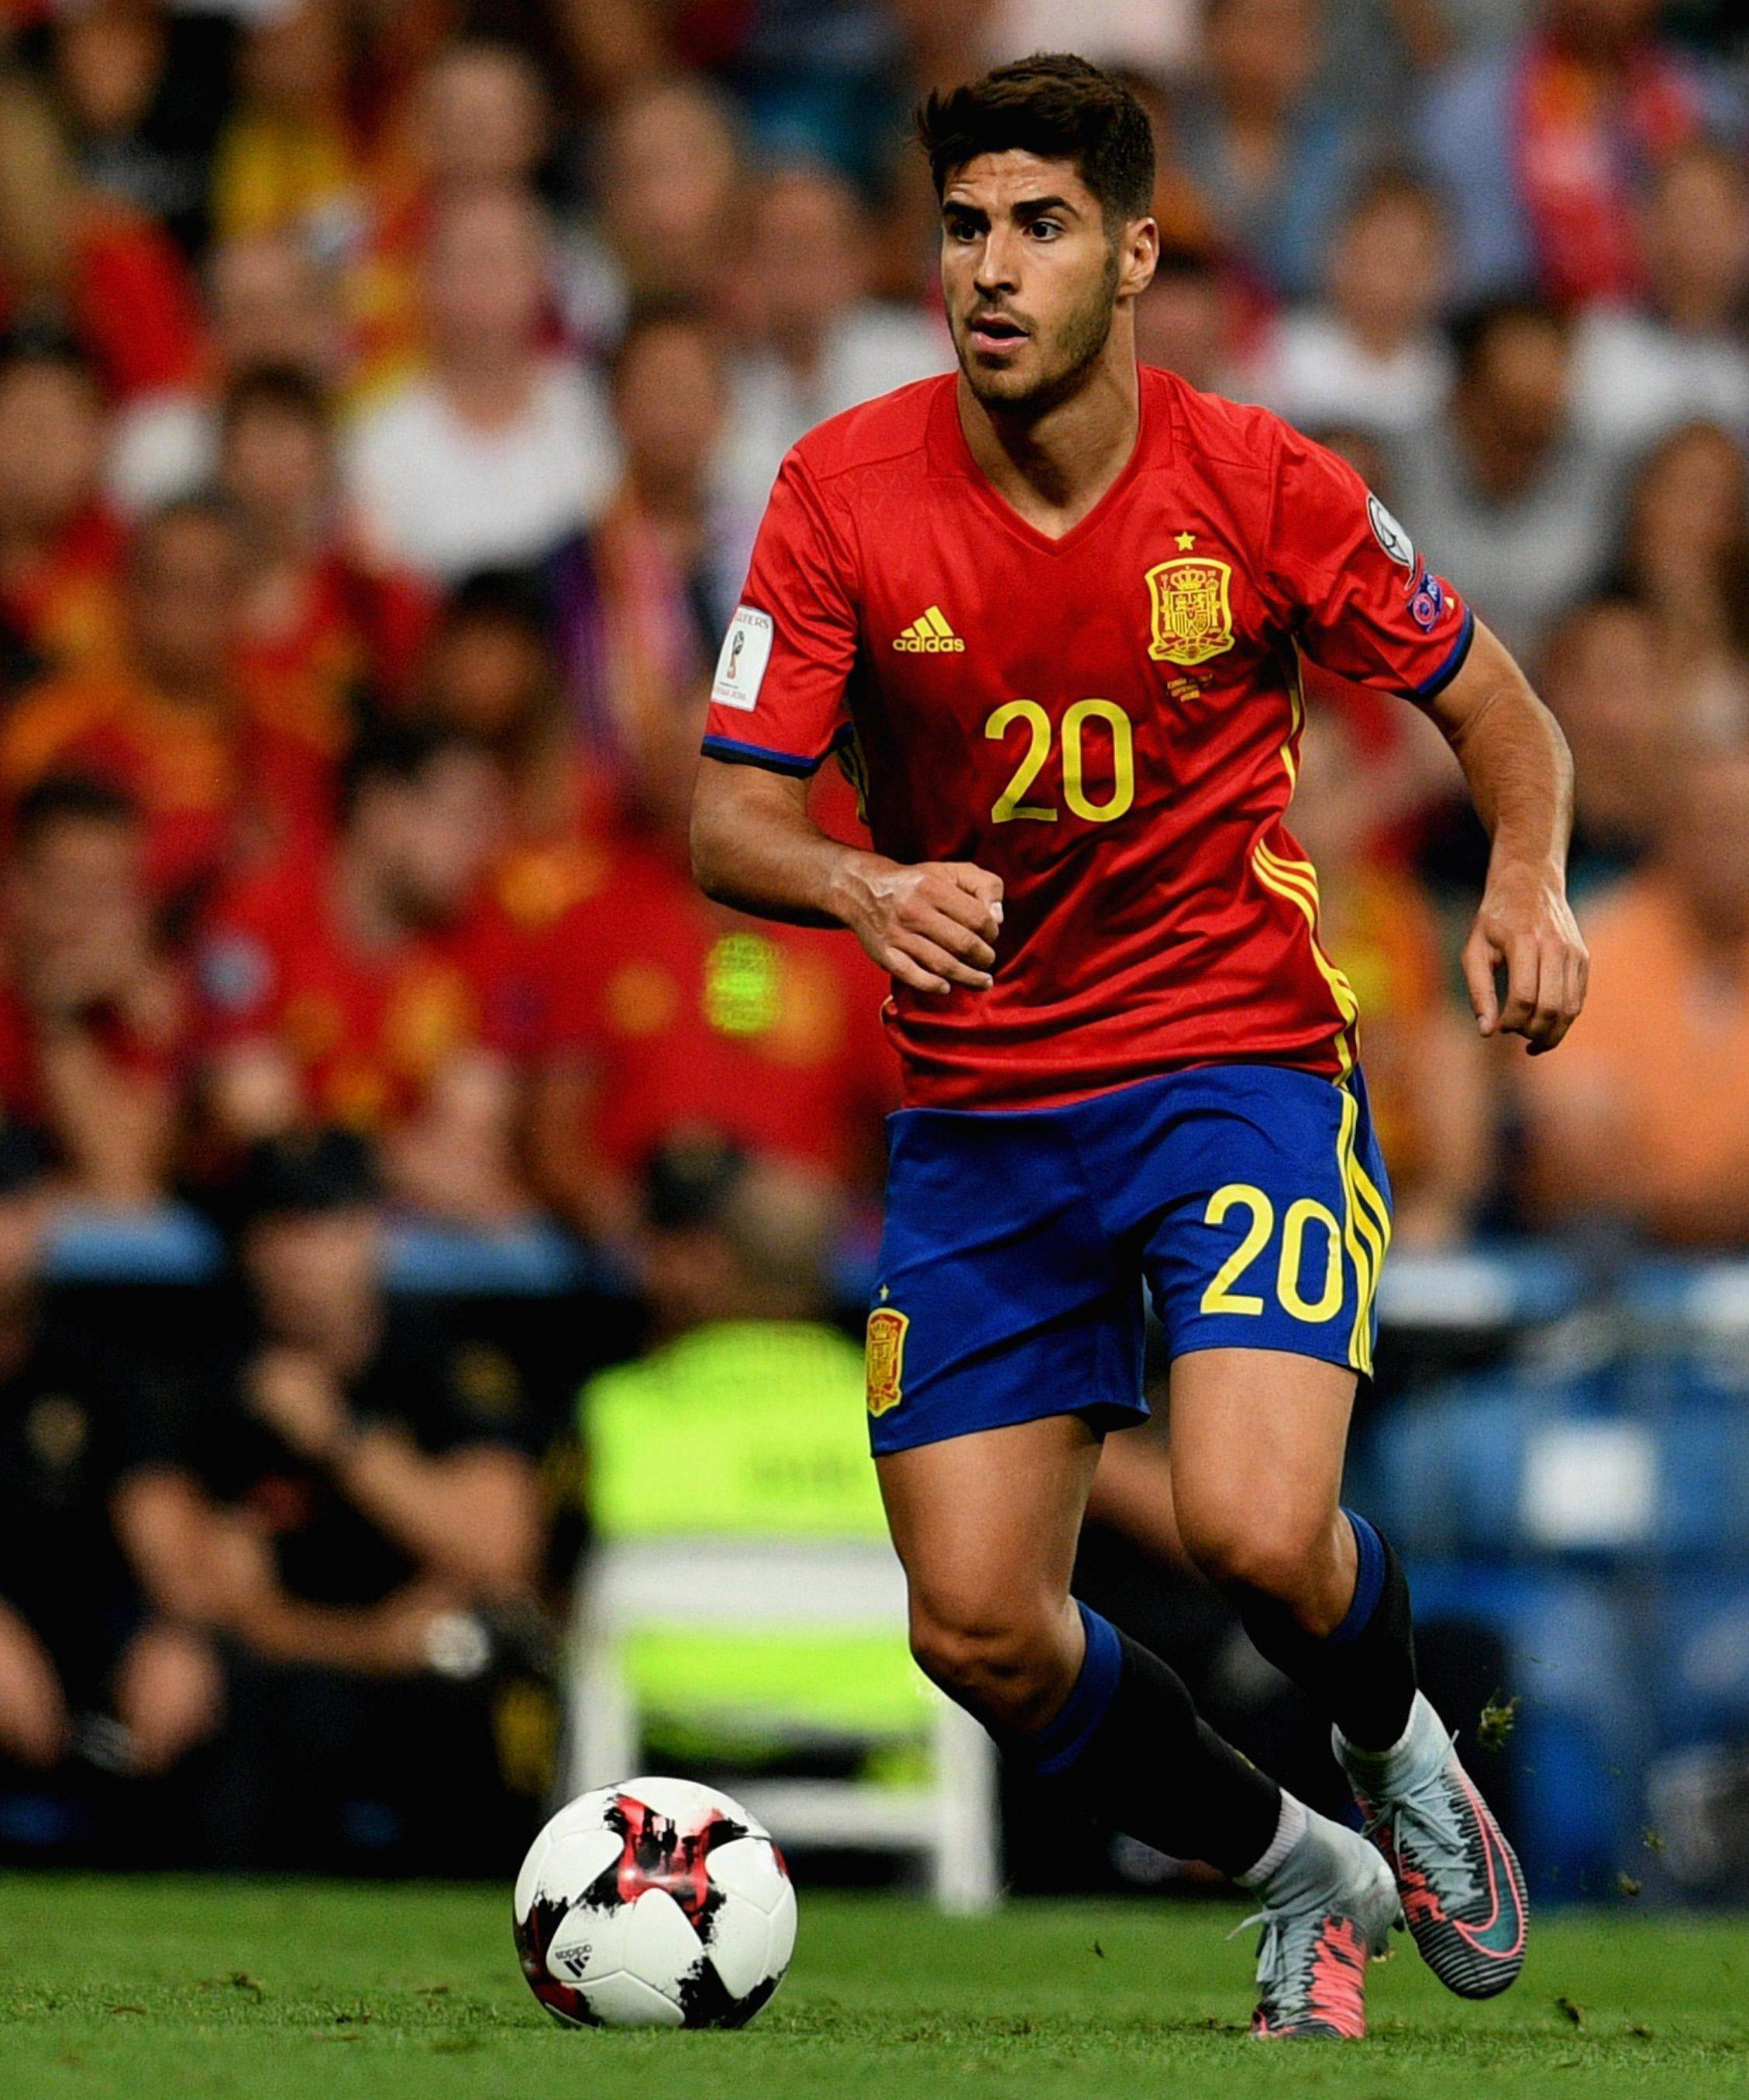 Asensio made his Spain debut last year and has won fourcaps